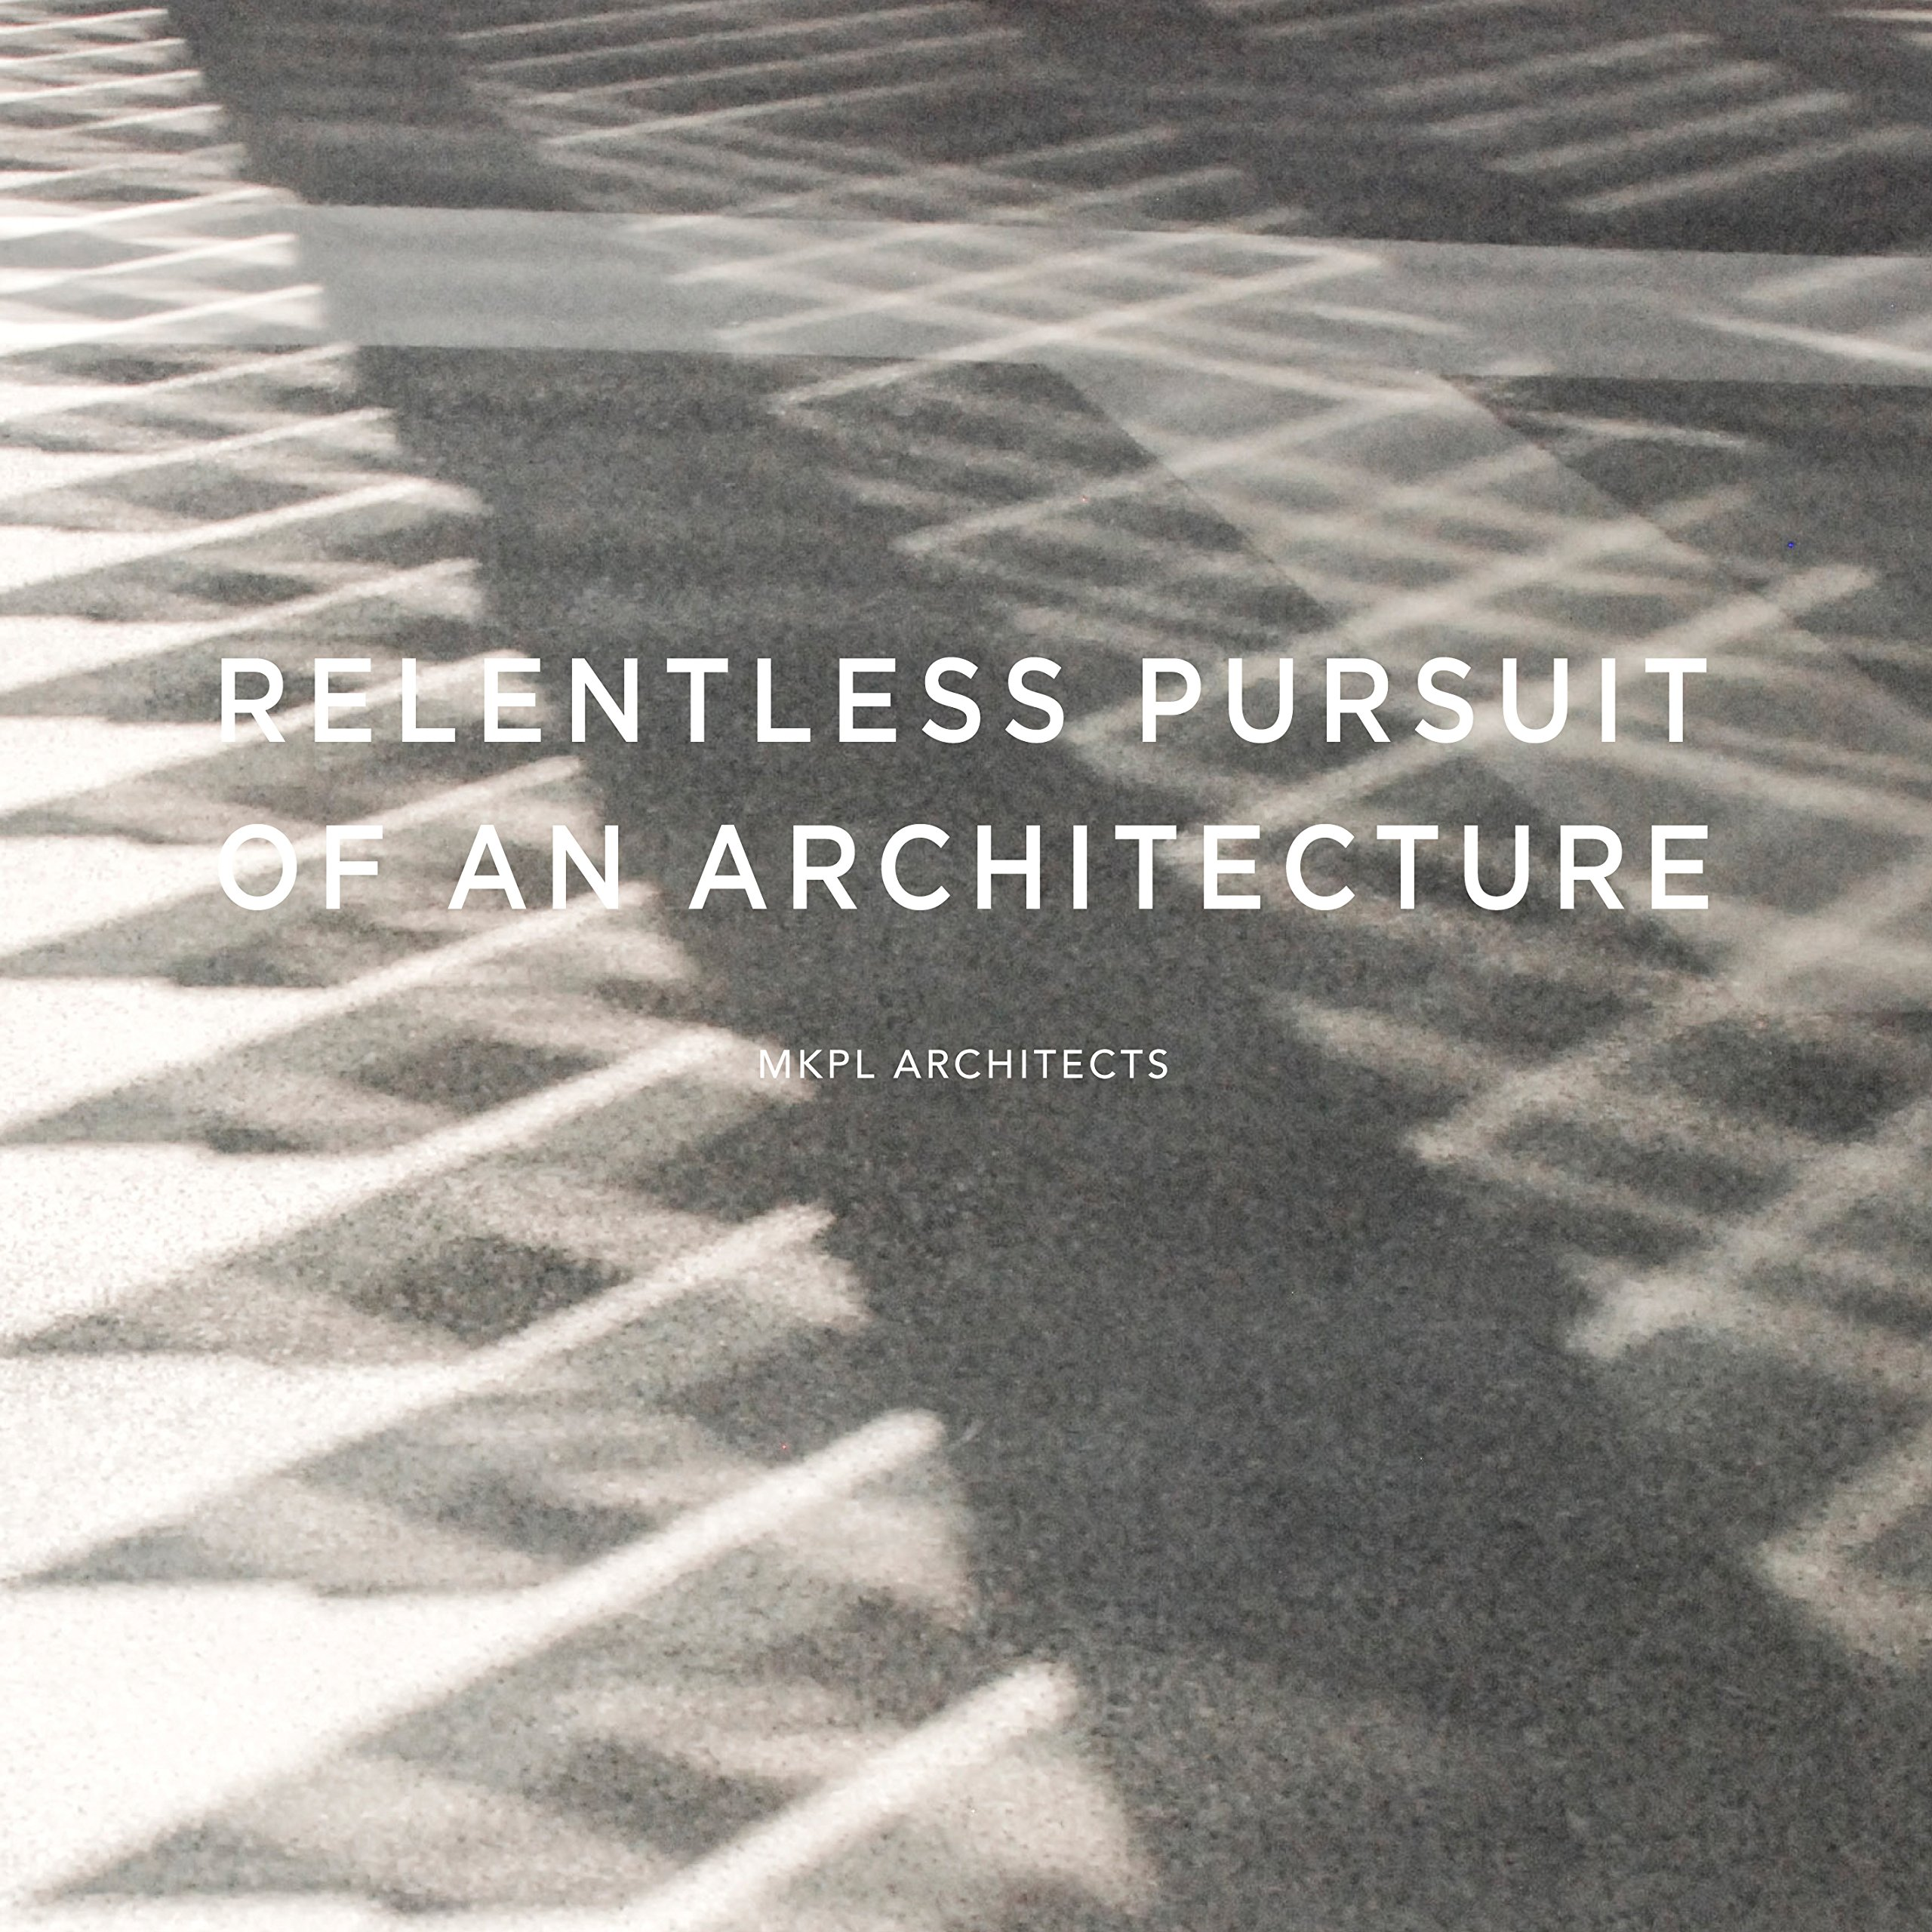 Download Relentless Pursuit of an Architecture: MKPL Architects pdf